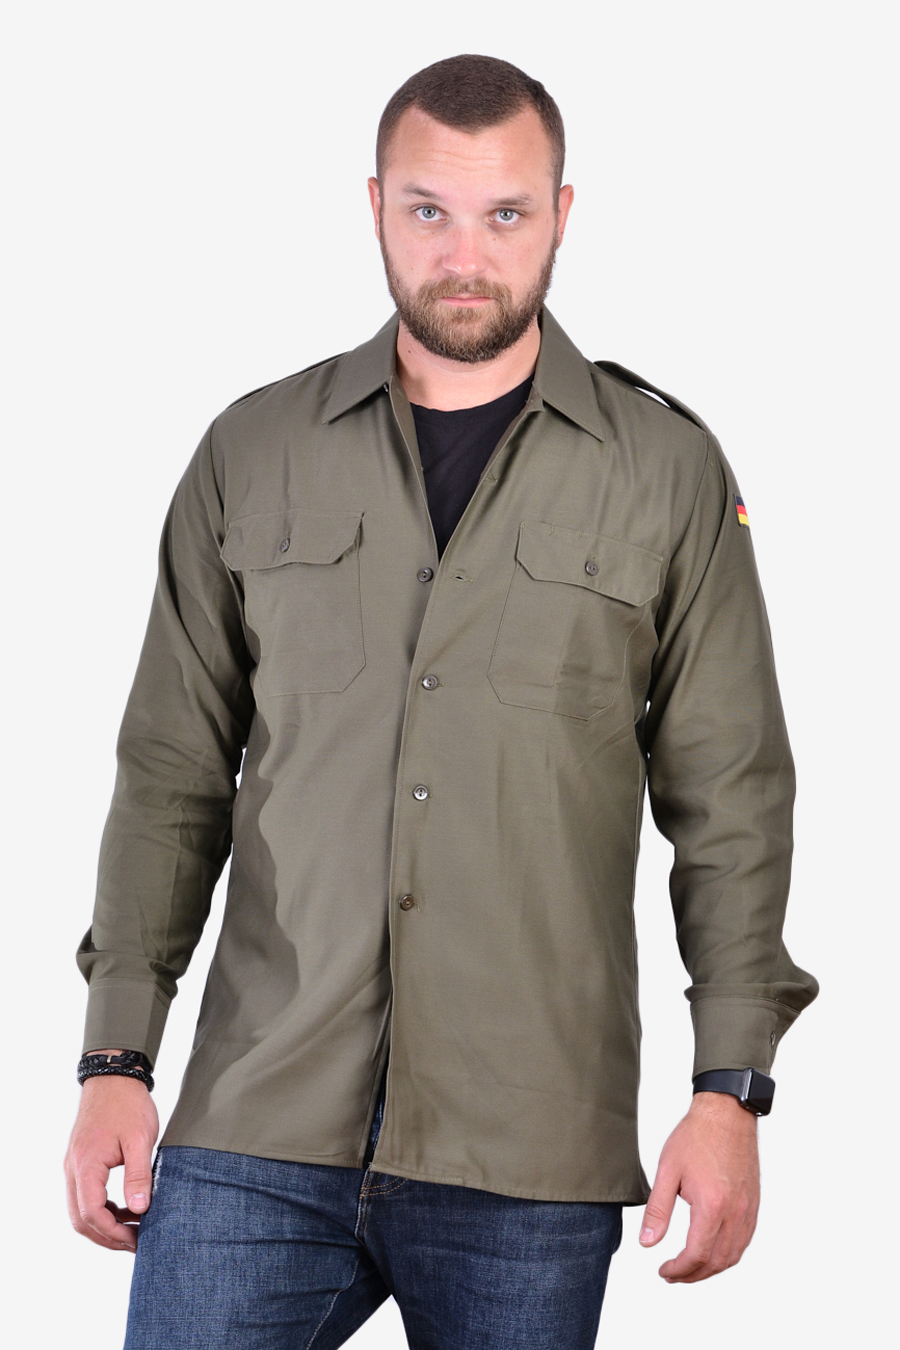 German military shirt